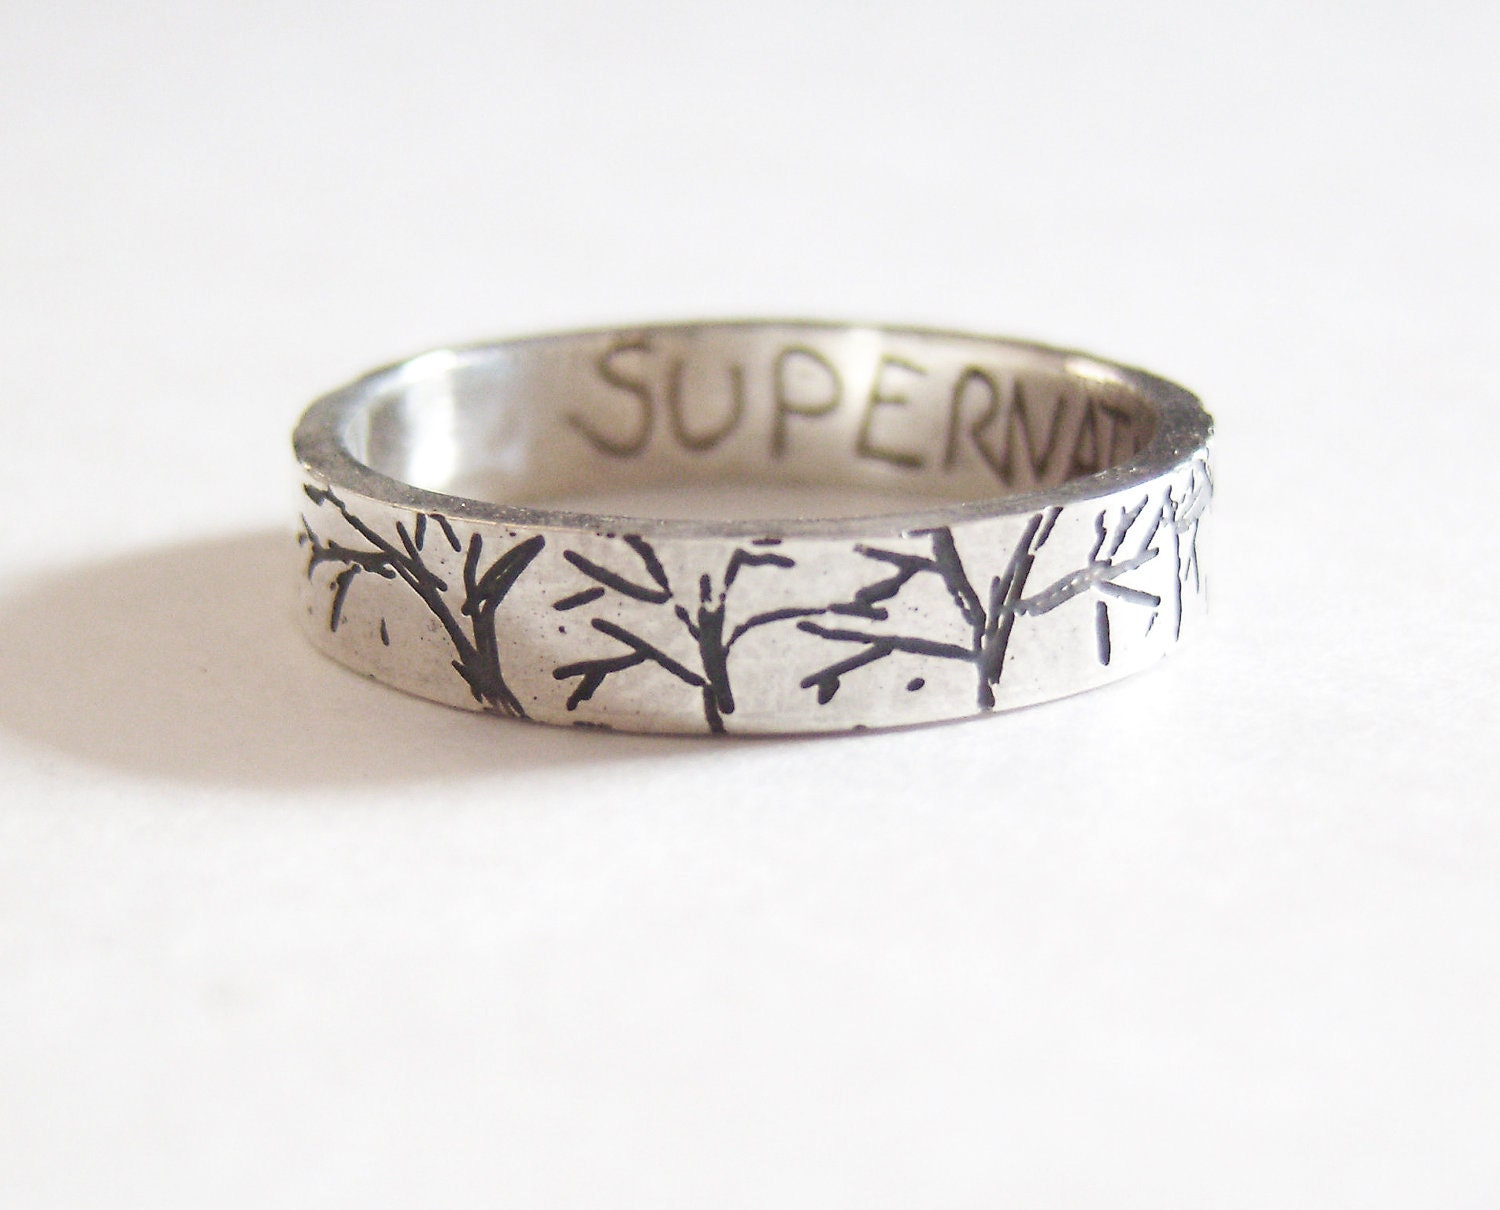 Supernatural creepy forest etched silver ring with SUPERNATURAL etched inside. - ArdentArgent